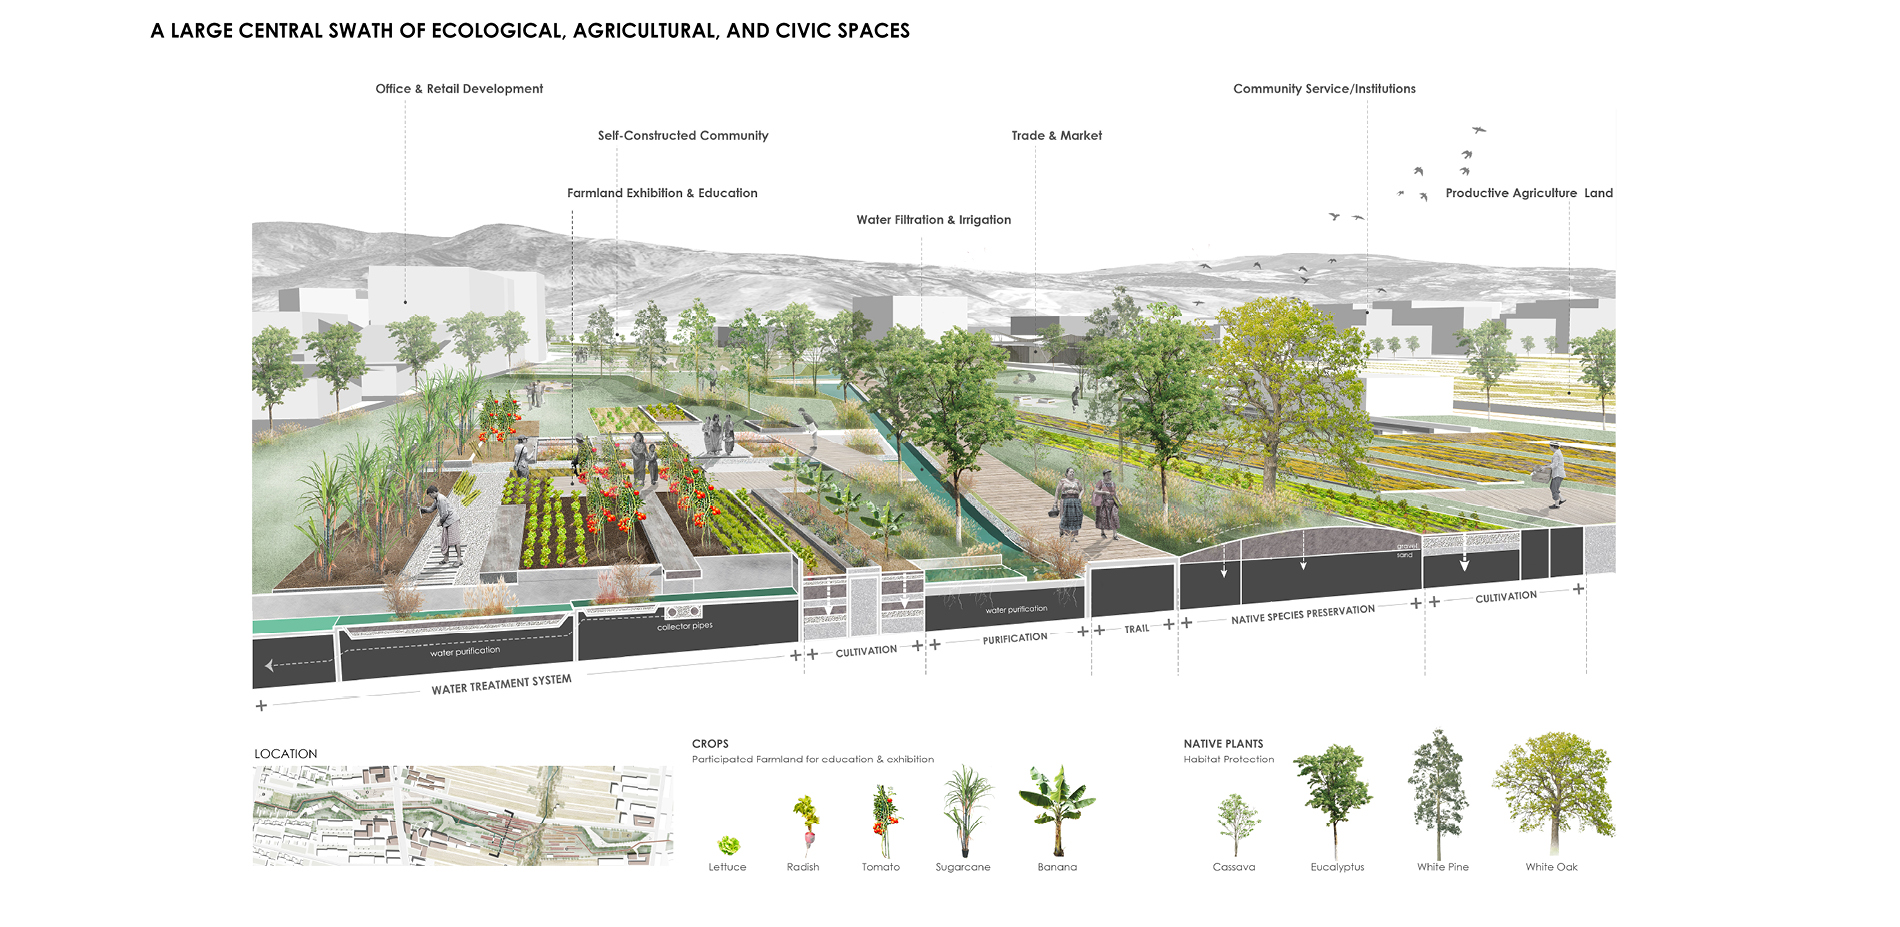 A Large central Swath of Ecological, Agricultural, and Civic Spacesr